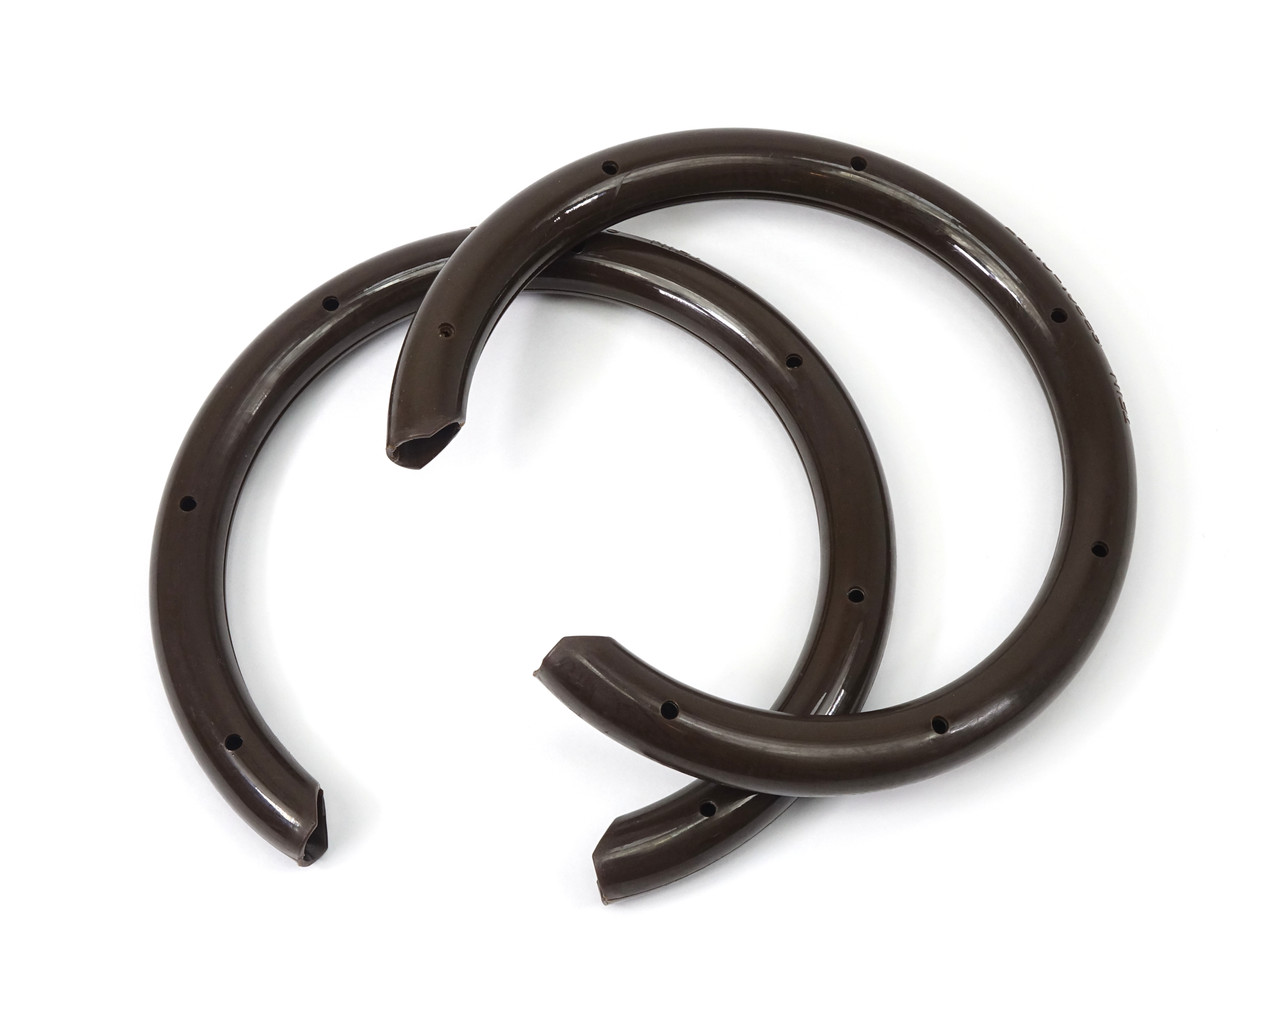 Sleeve pair for progressive rate performance lowering springs - Auto Ricambi FIAT 124 Spider, Spider 2000 and Pininfarina - 1966-1985